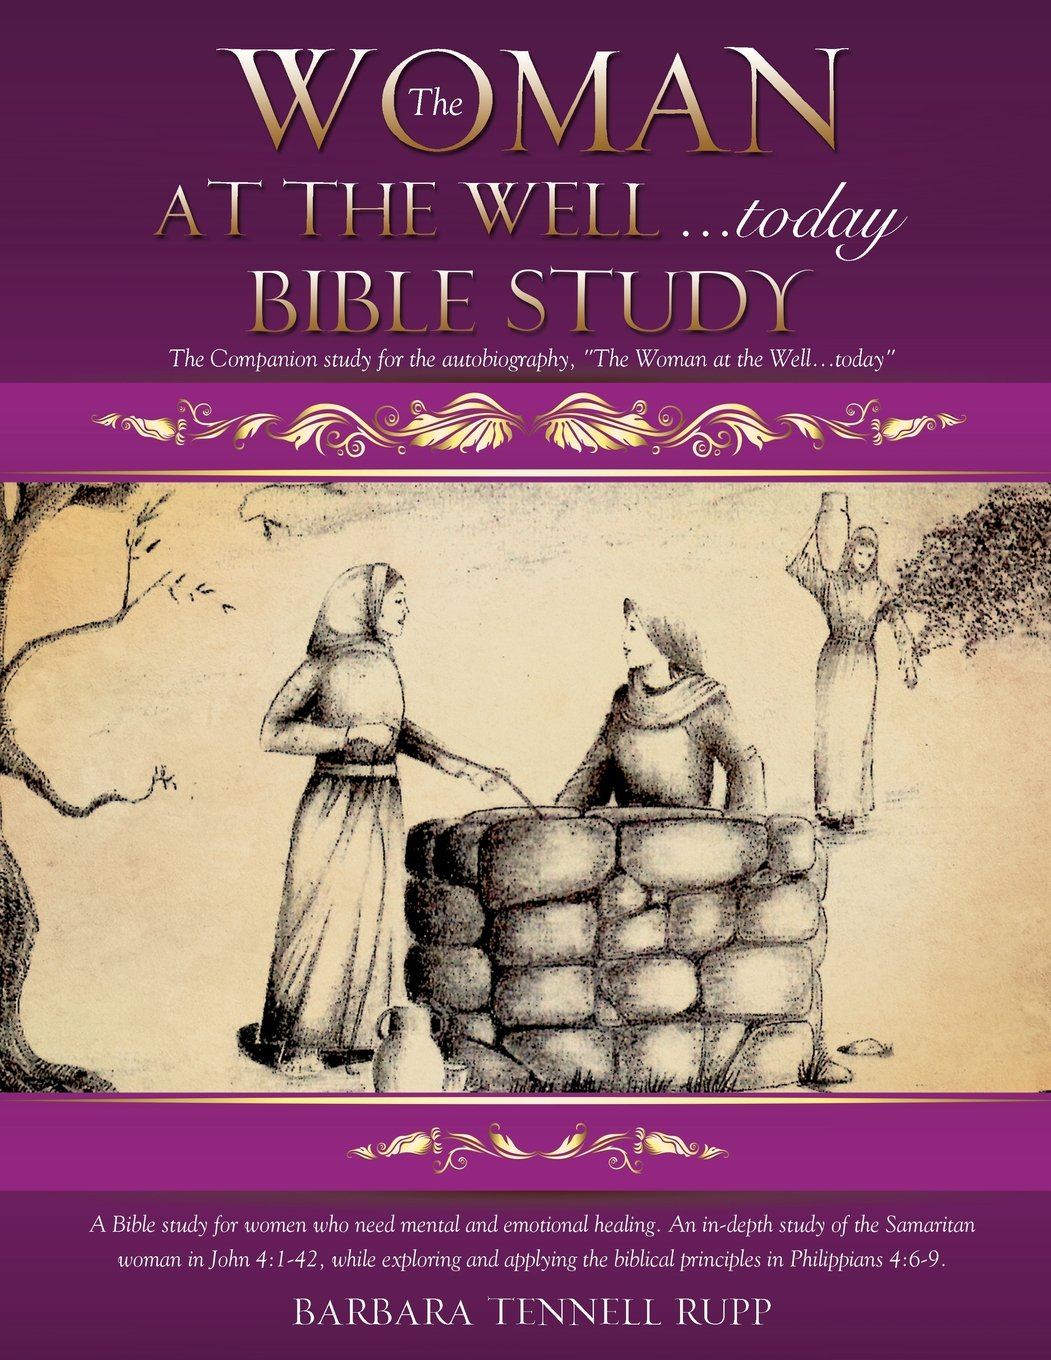 The samaritan woman at the well bible study